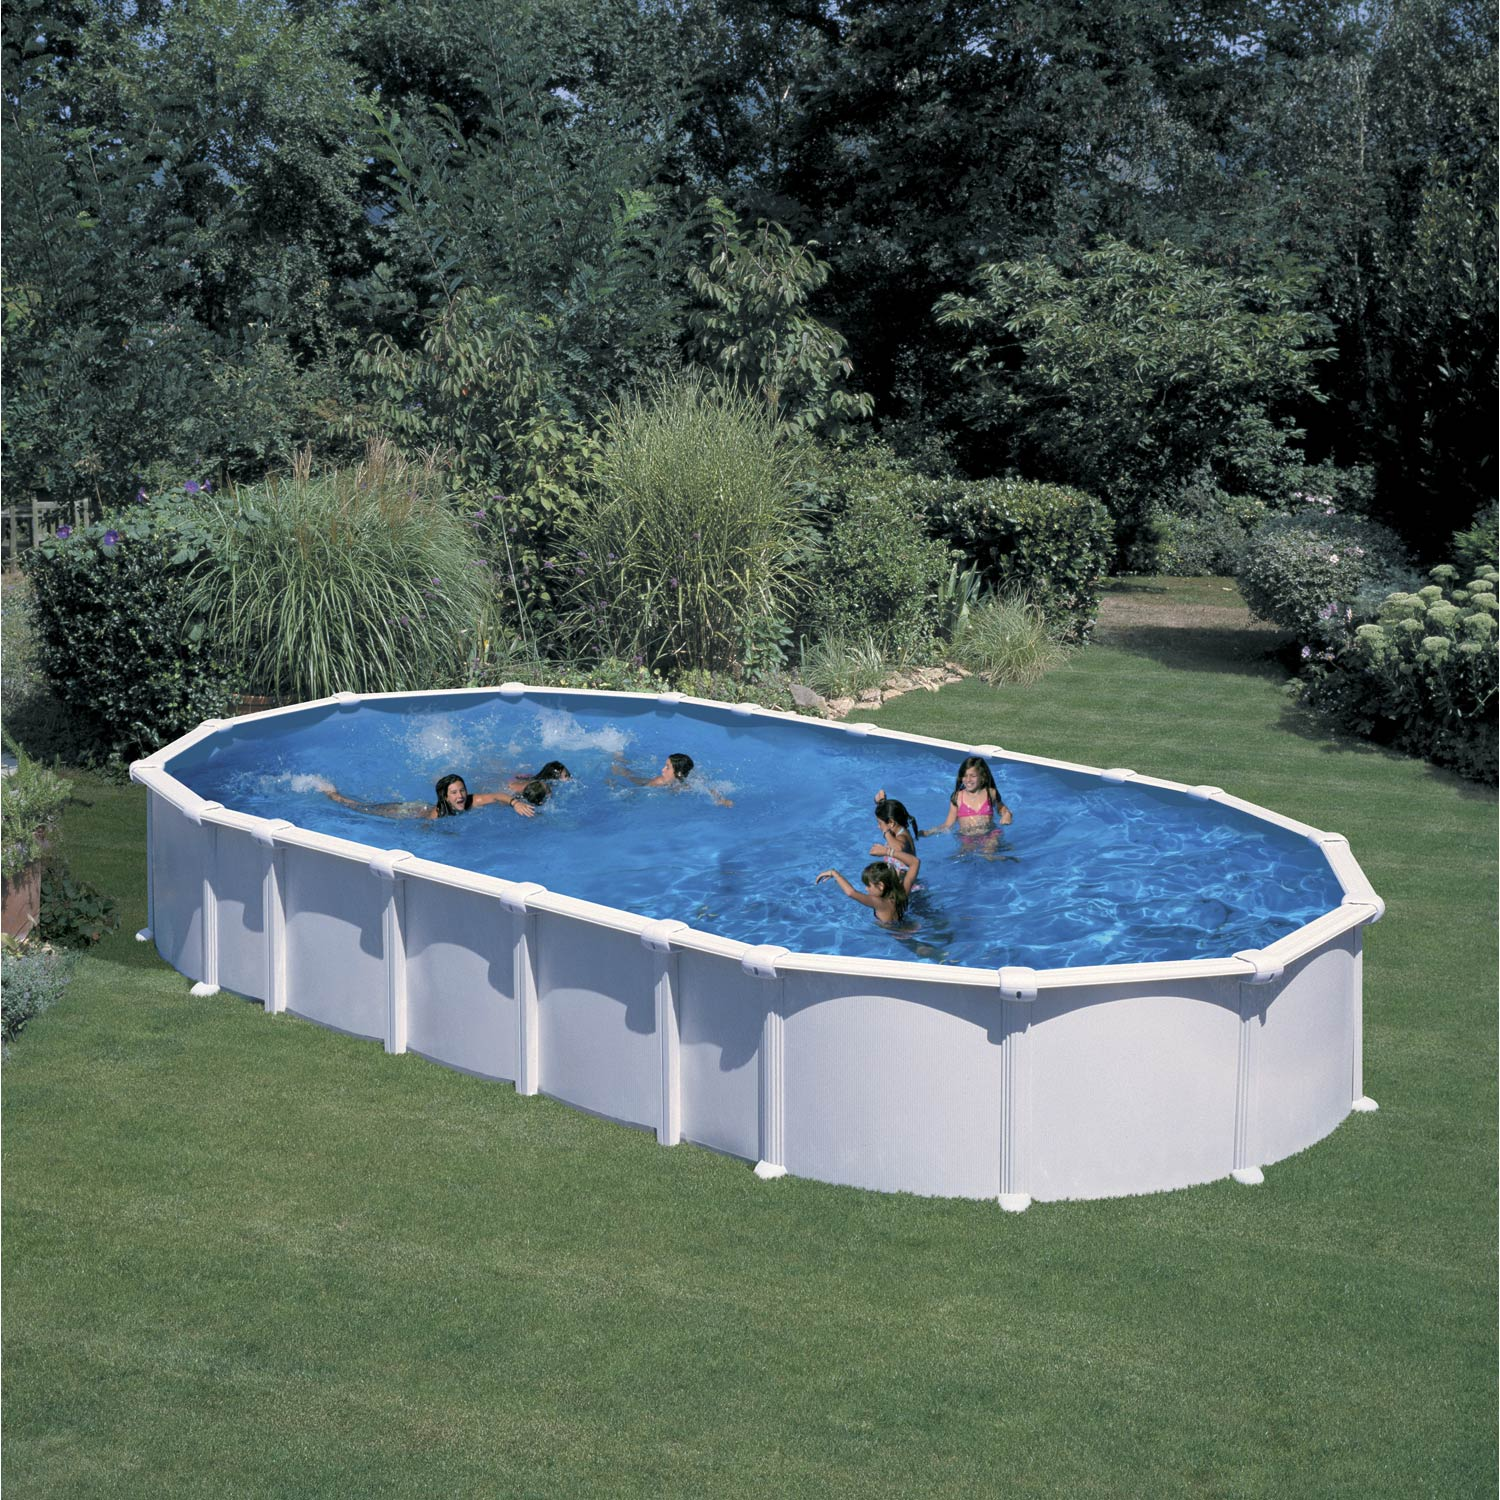 Piscine hors sol acier san clara l 6 4 x l x h for Piscine gonflable rectangulaire